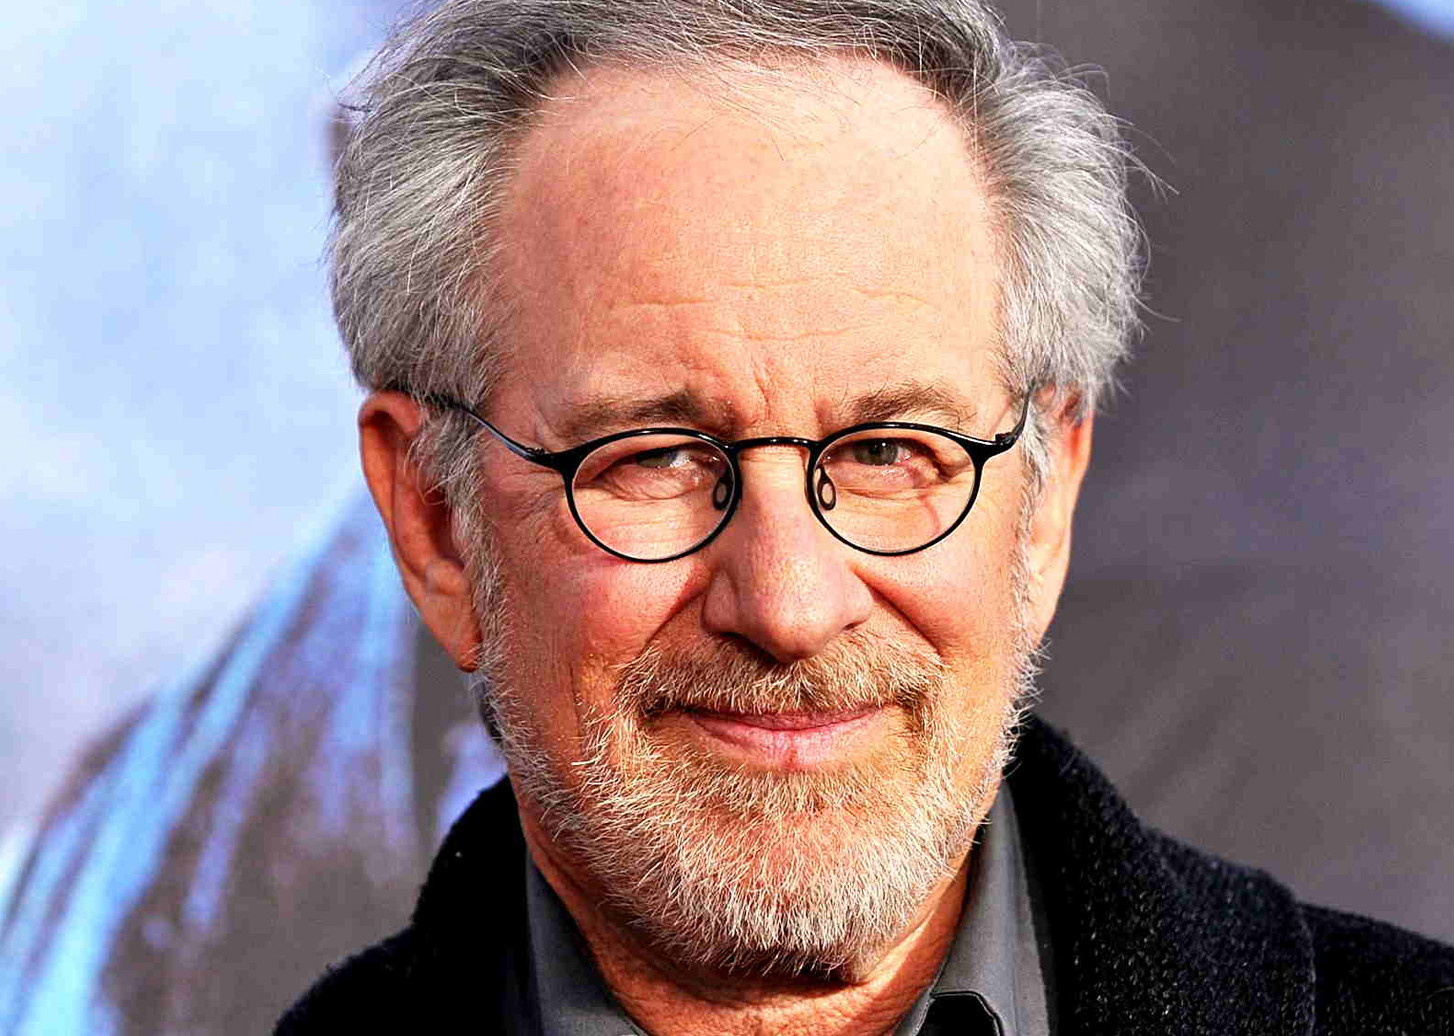 5 FACTS YOU NEVER KNEW ABOUT STEVEN SPIELBERG